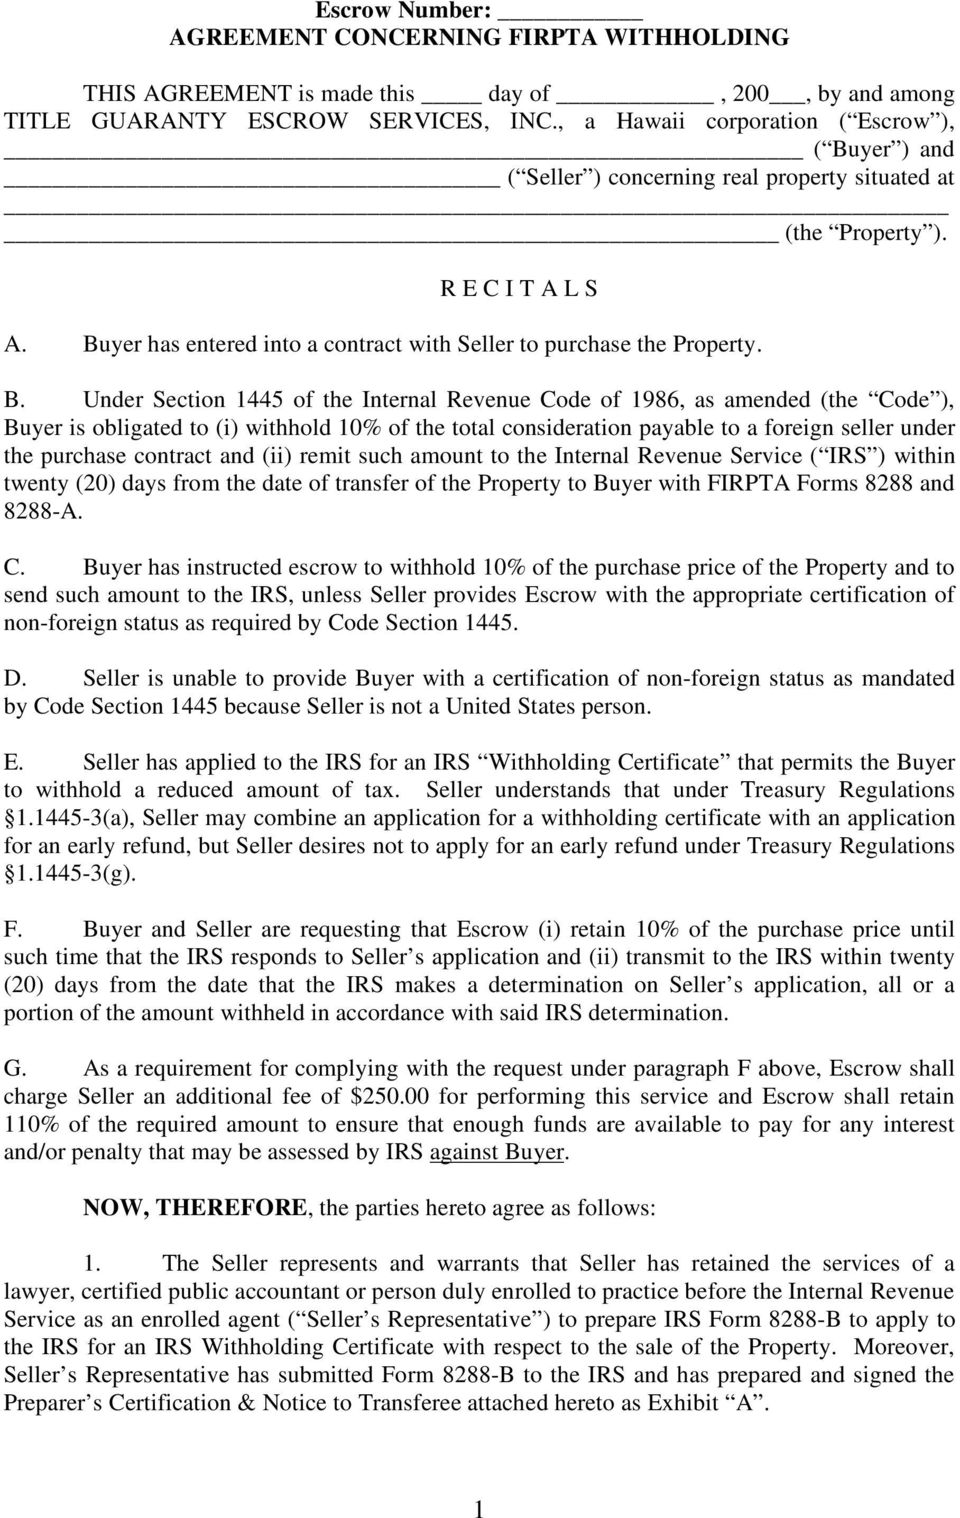 Escrow number agreement concerning firpta withholding pdf buyer has entered into a contract with seller to purchase the property b falaconquin